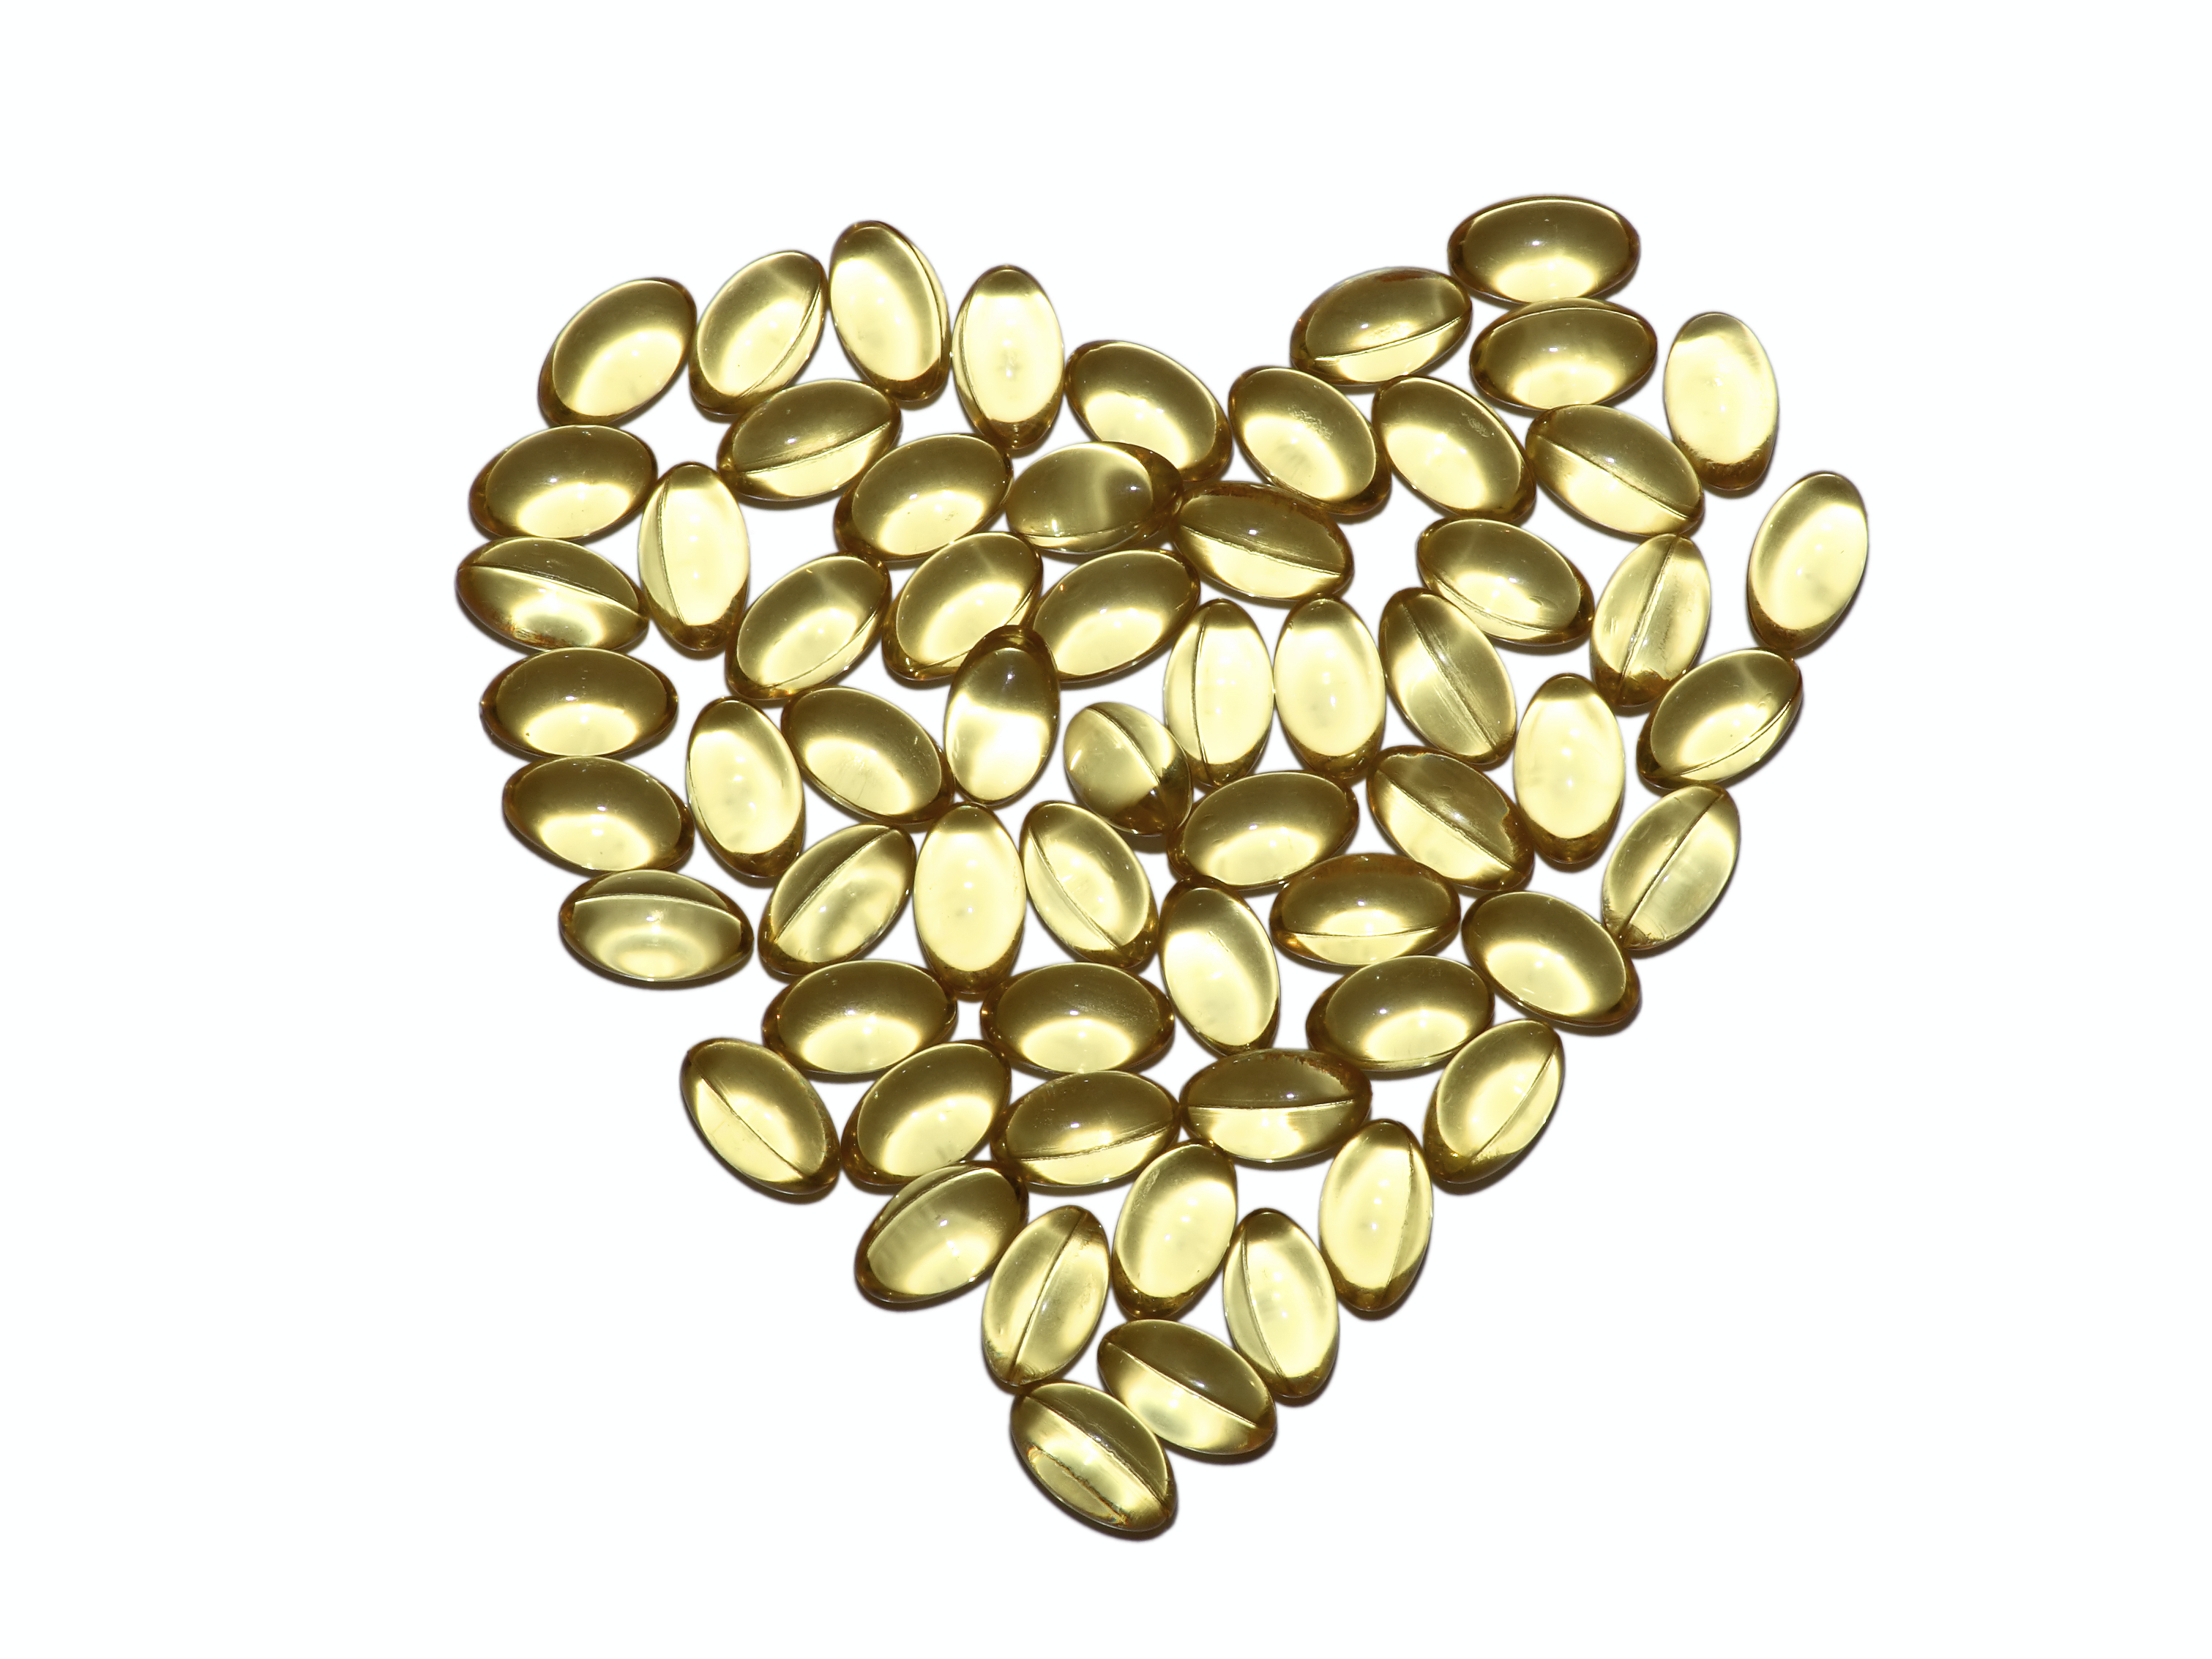 Scant Evidence To Support Vitamins Against Cancer, Heart Disease